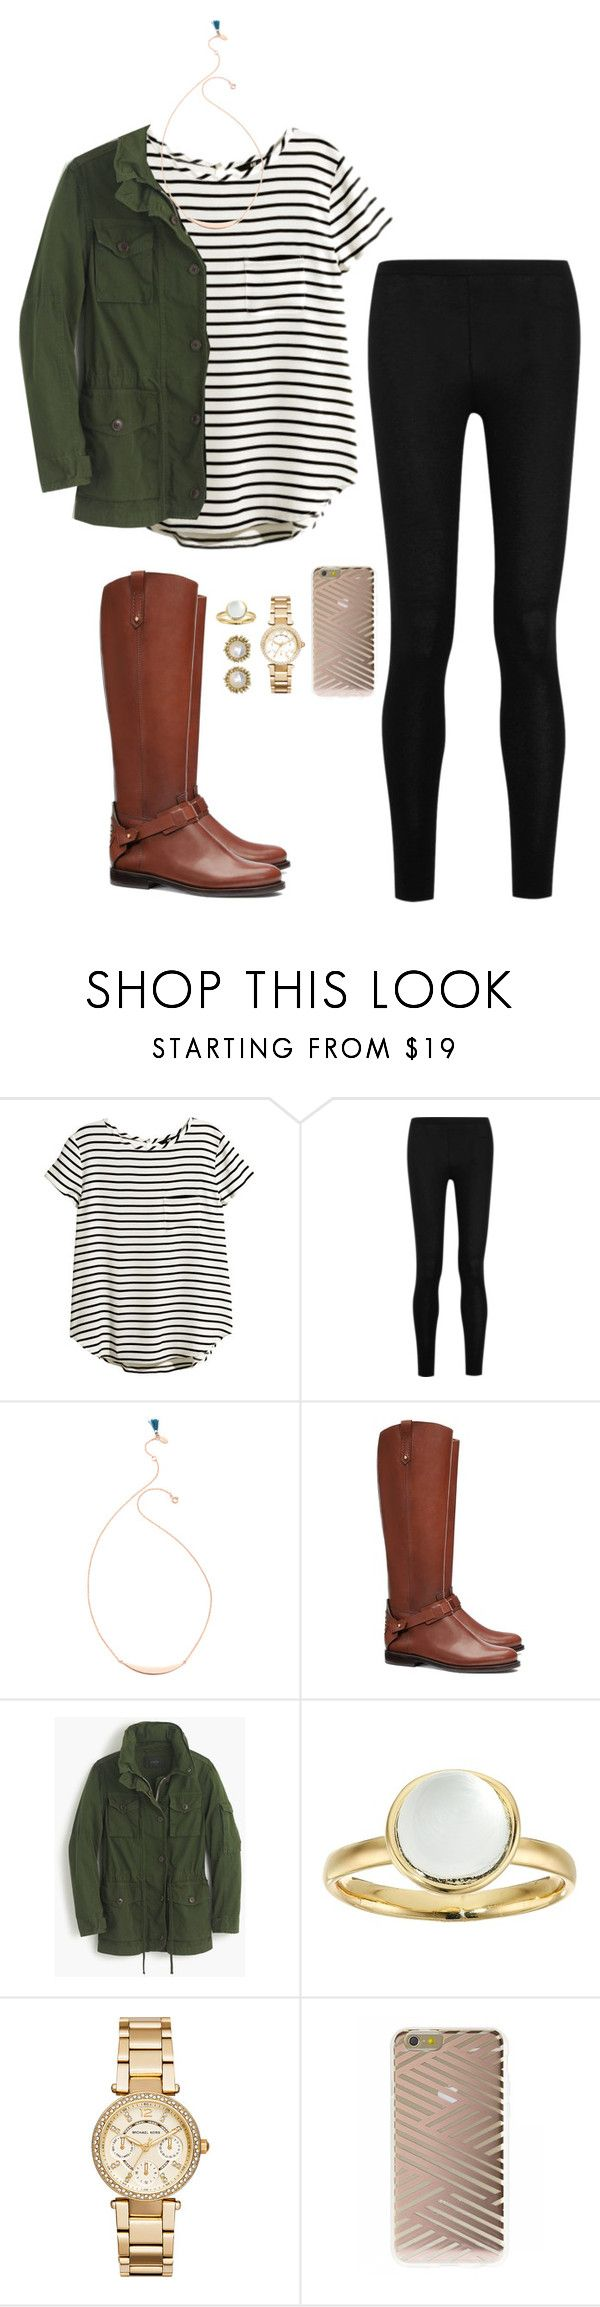 """""""Dress down days are my favorite days."""" by lillynelsonn ❤ liked on Polyvore featuring H&M, Donna Karan, Shashi, Tory Burch, J.Crew, Alexis Bittar, Michael Kors, Sonix, Kendra Scott and women's clothing"""